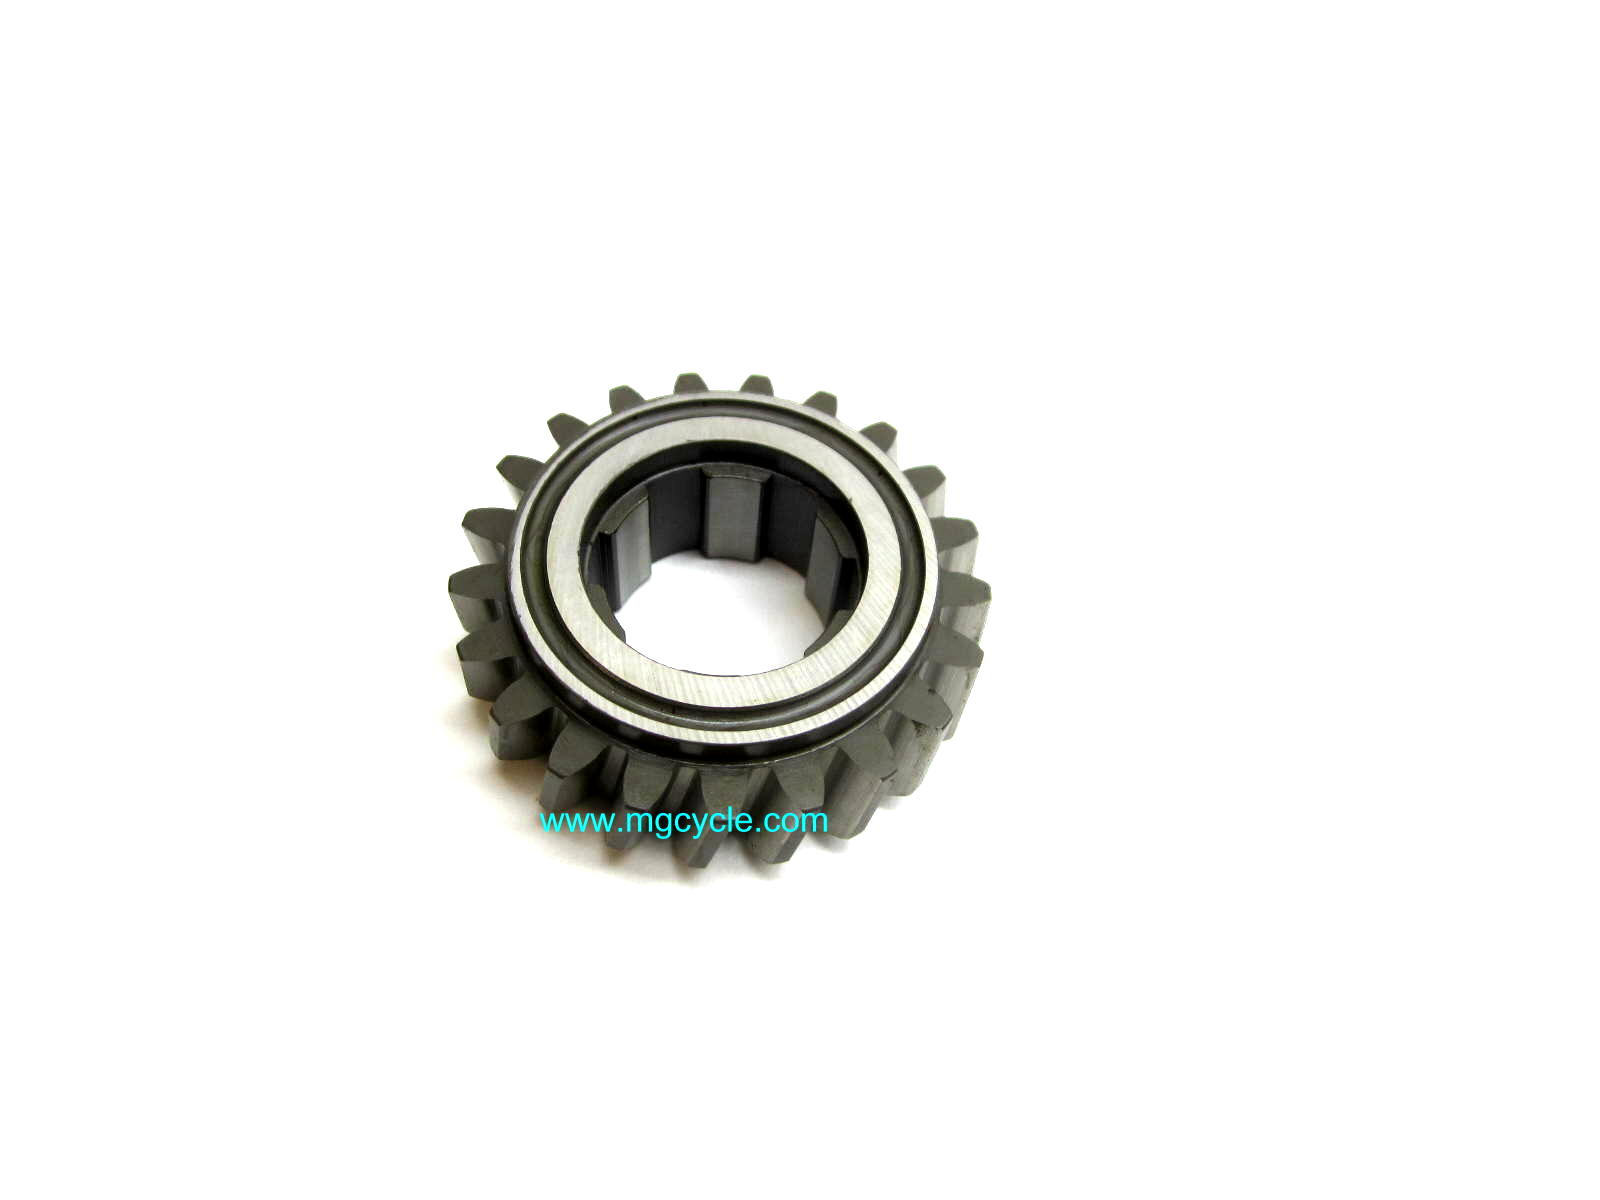 5th gear, 21 tooth GU14215213